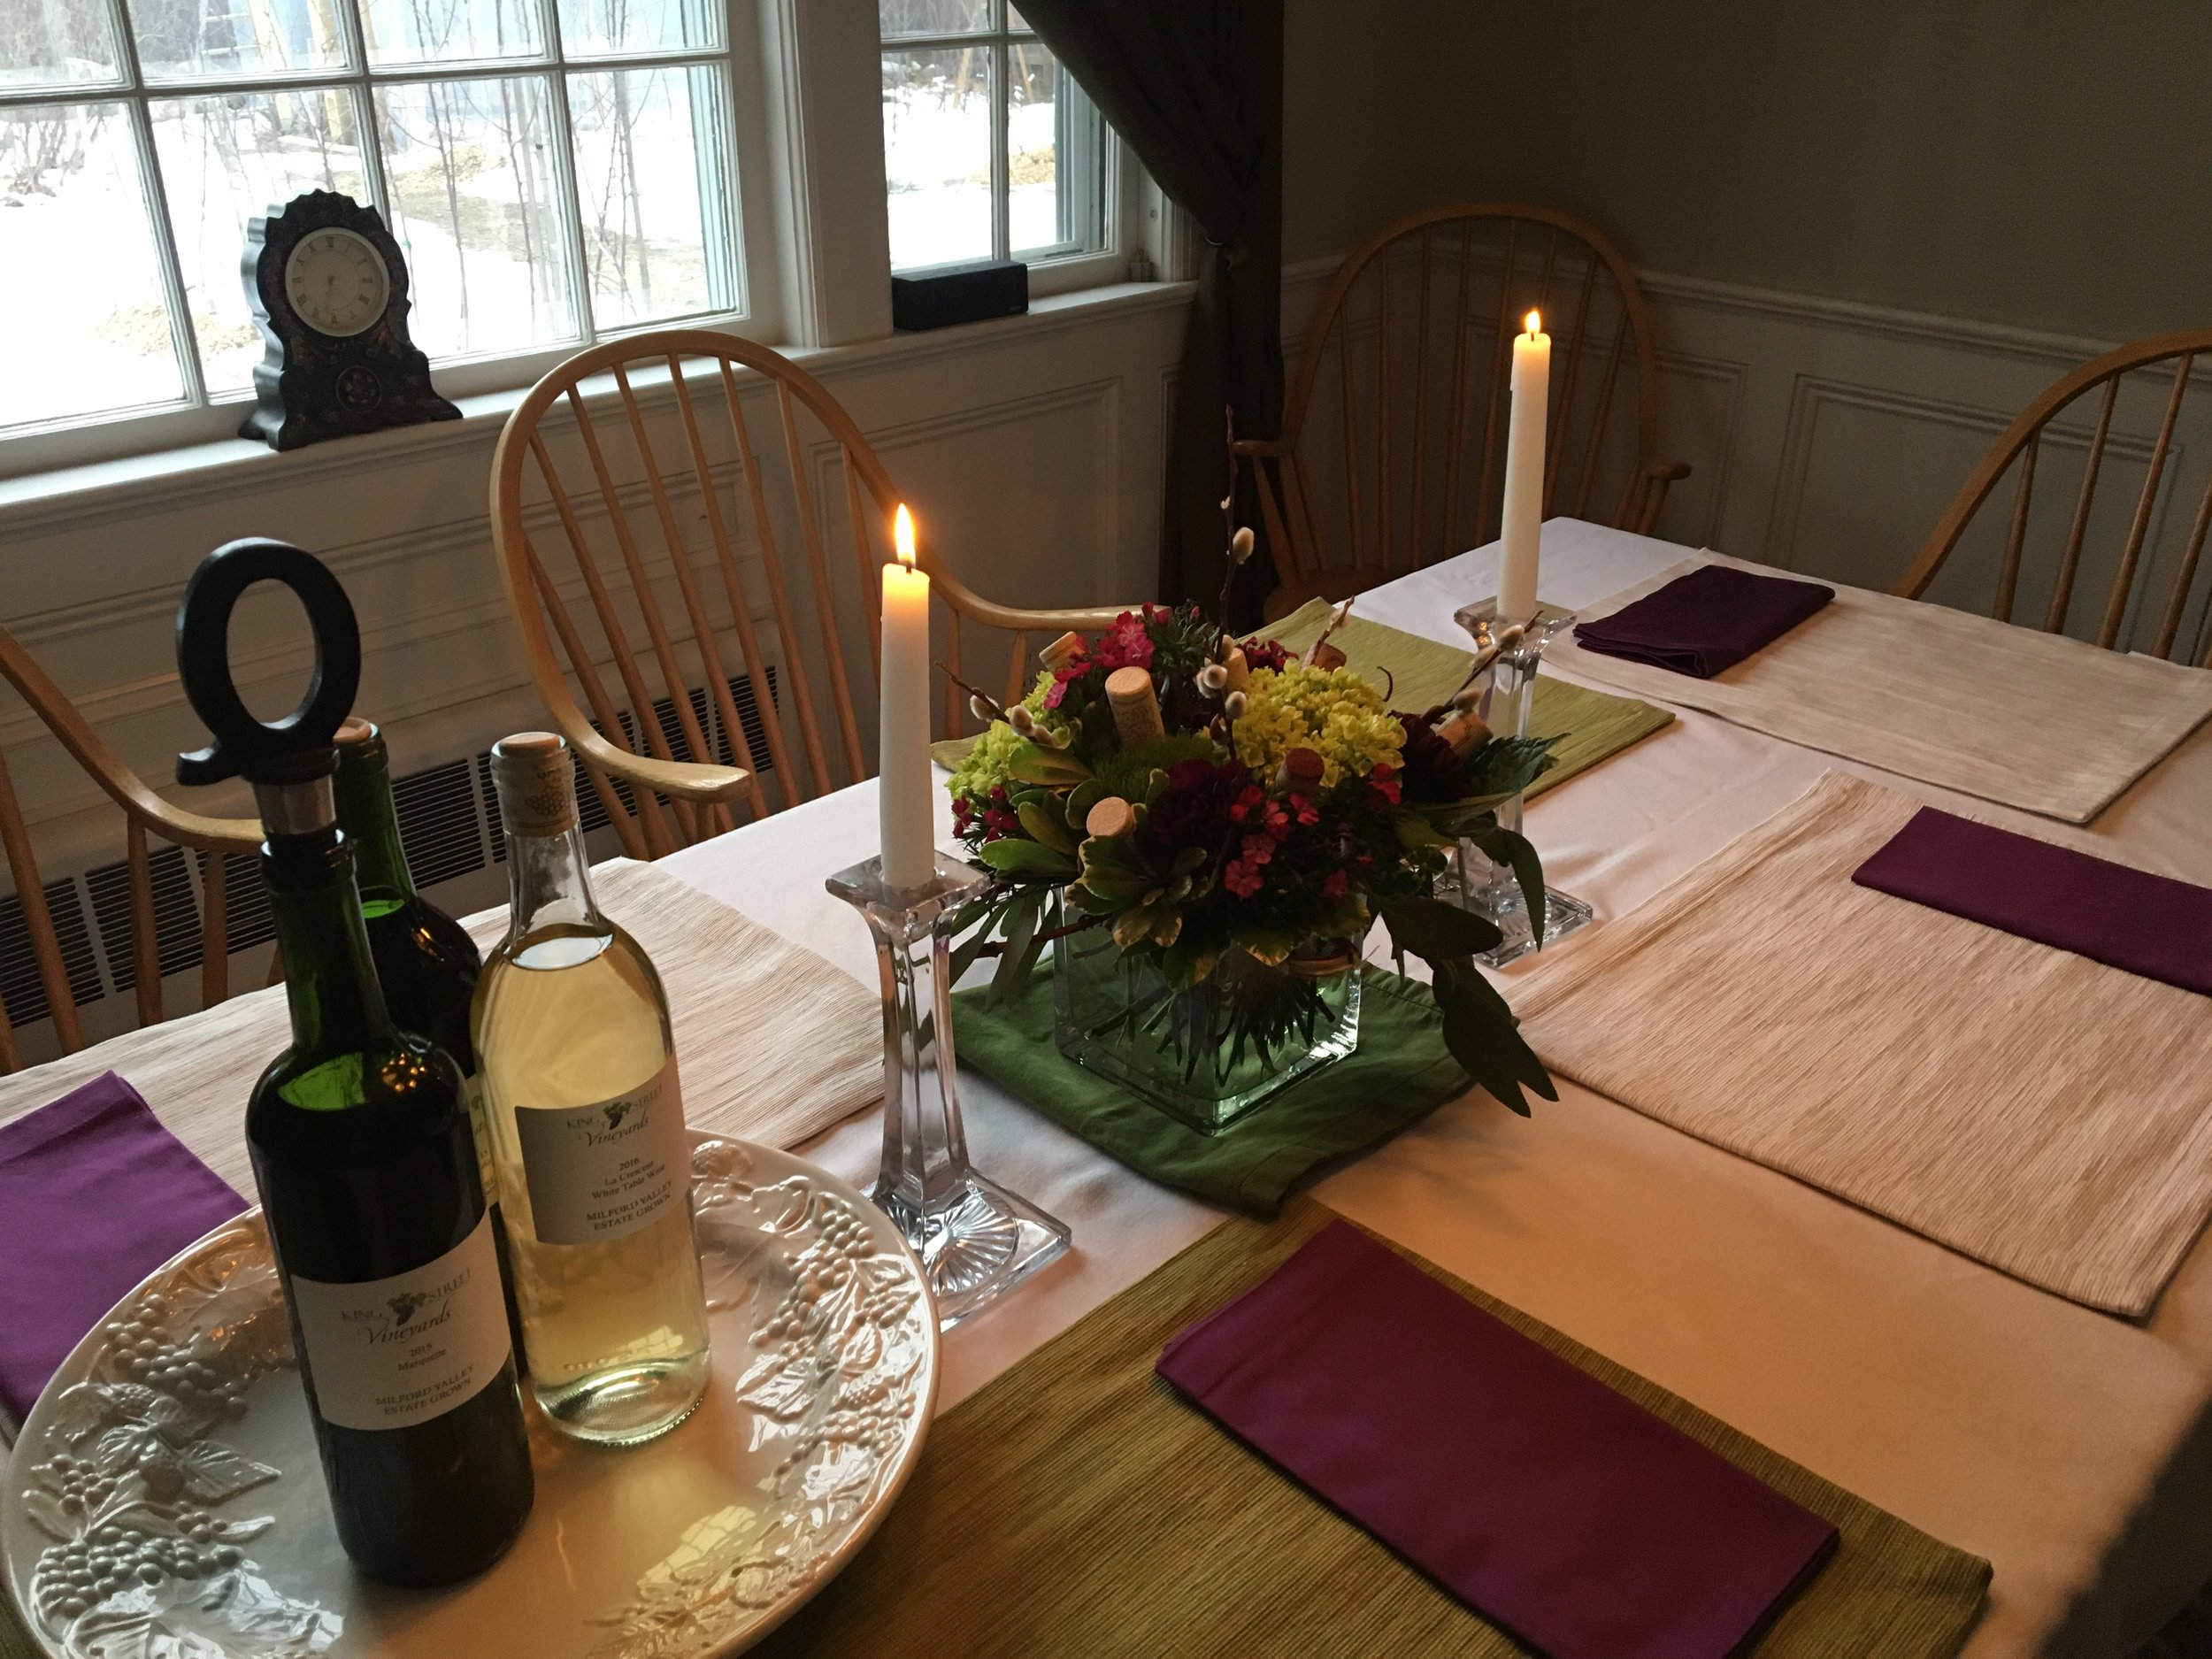 Preparing for an evening of great fun, wine, entertainment and tapas. Come join Vintner and Private Tapas Chef E. Emerson Quigley some Friday or Saturday evening from 7:00-9:00 pm for a very unique experience in beautiful Milford NH. Call 603-672-7000 to make your reservations.